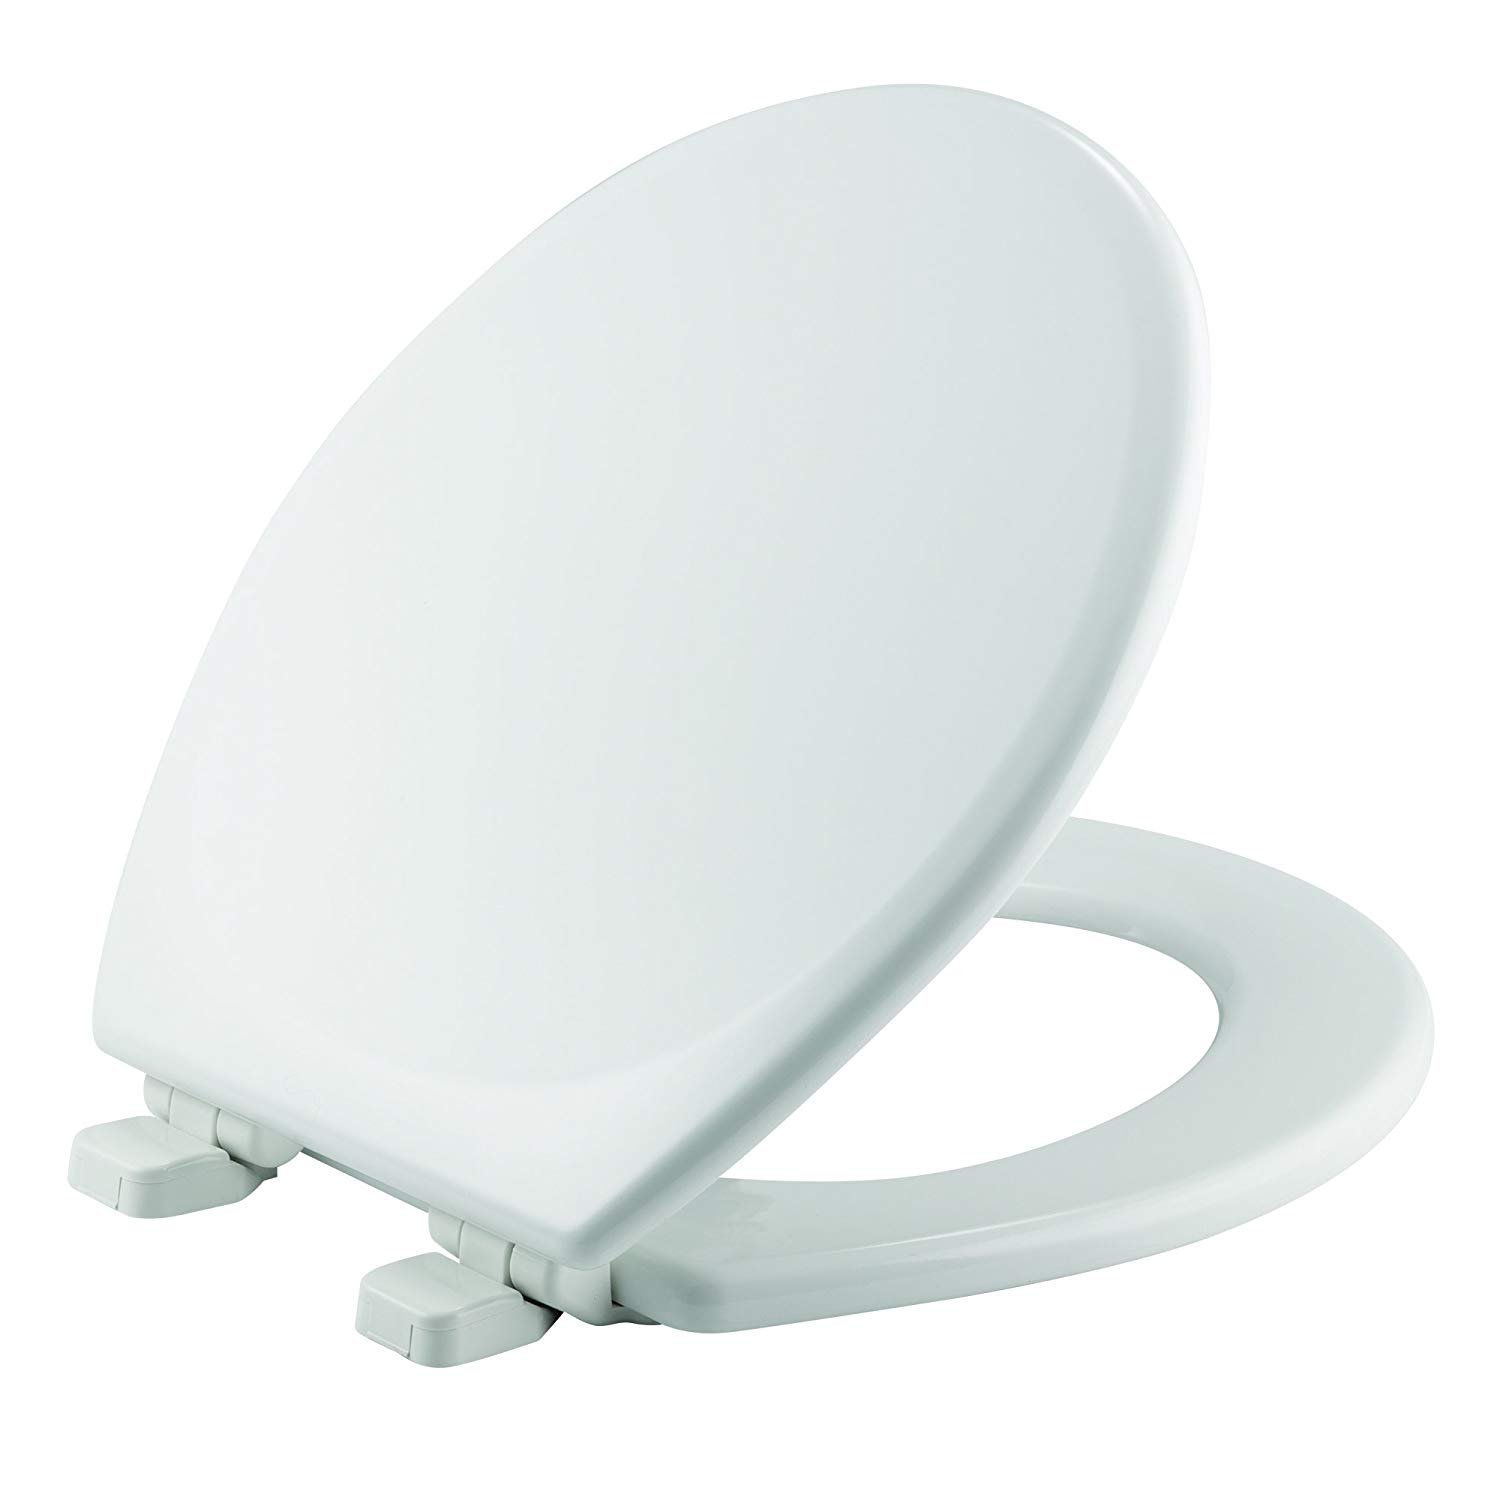 Mayfair Molded Wood Toilet Seat featuring Slow-Close Hinge, Top-Tite STA-TITE Seat Fastening System and Precision Seat Fit, Round, White, 43SLOW 000